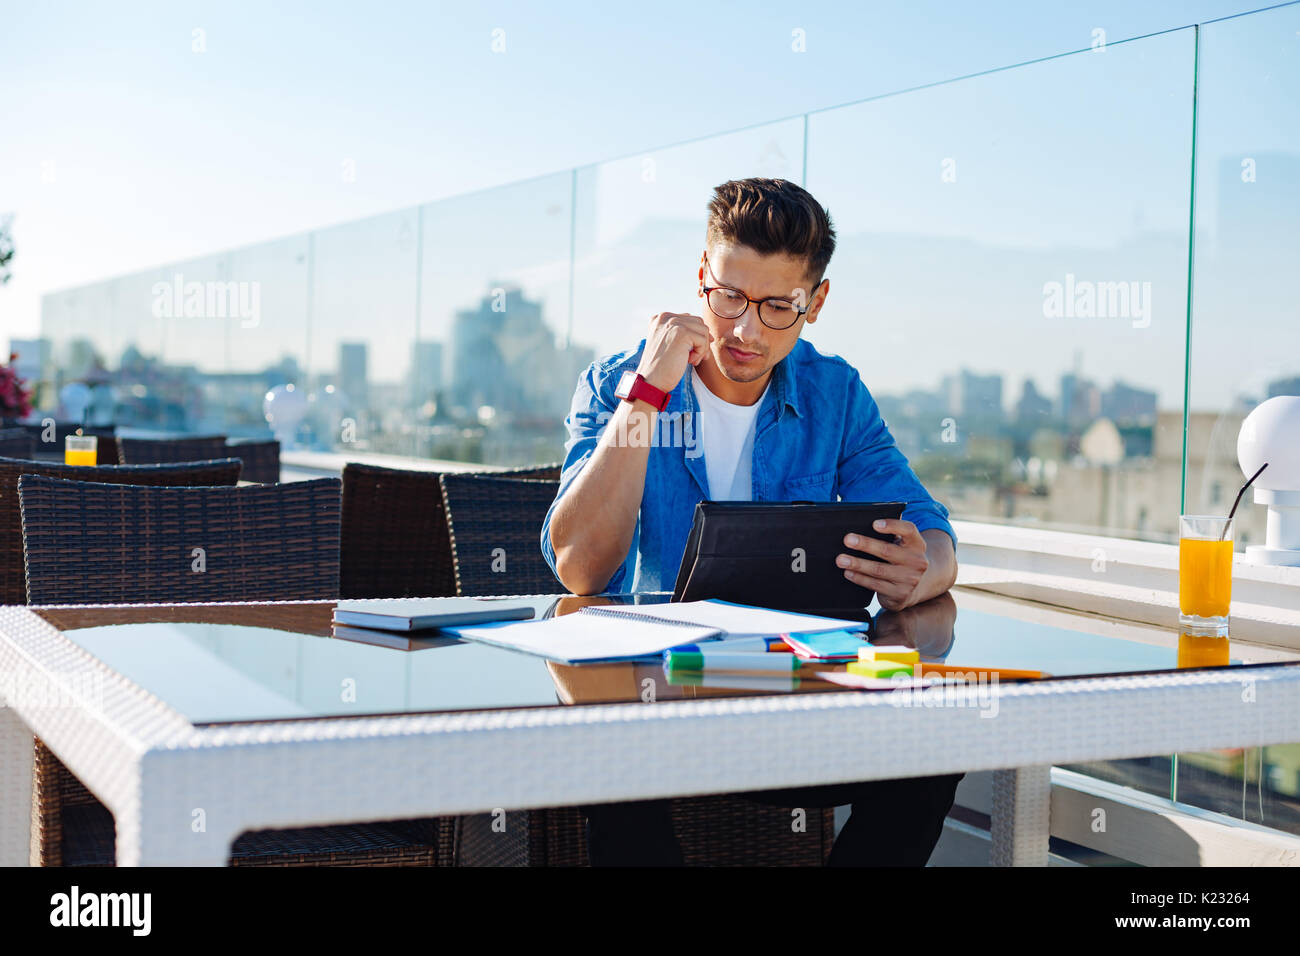 Serious college student working on tablet computer - Stock Image